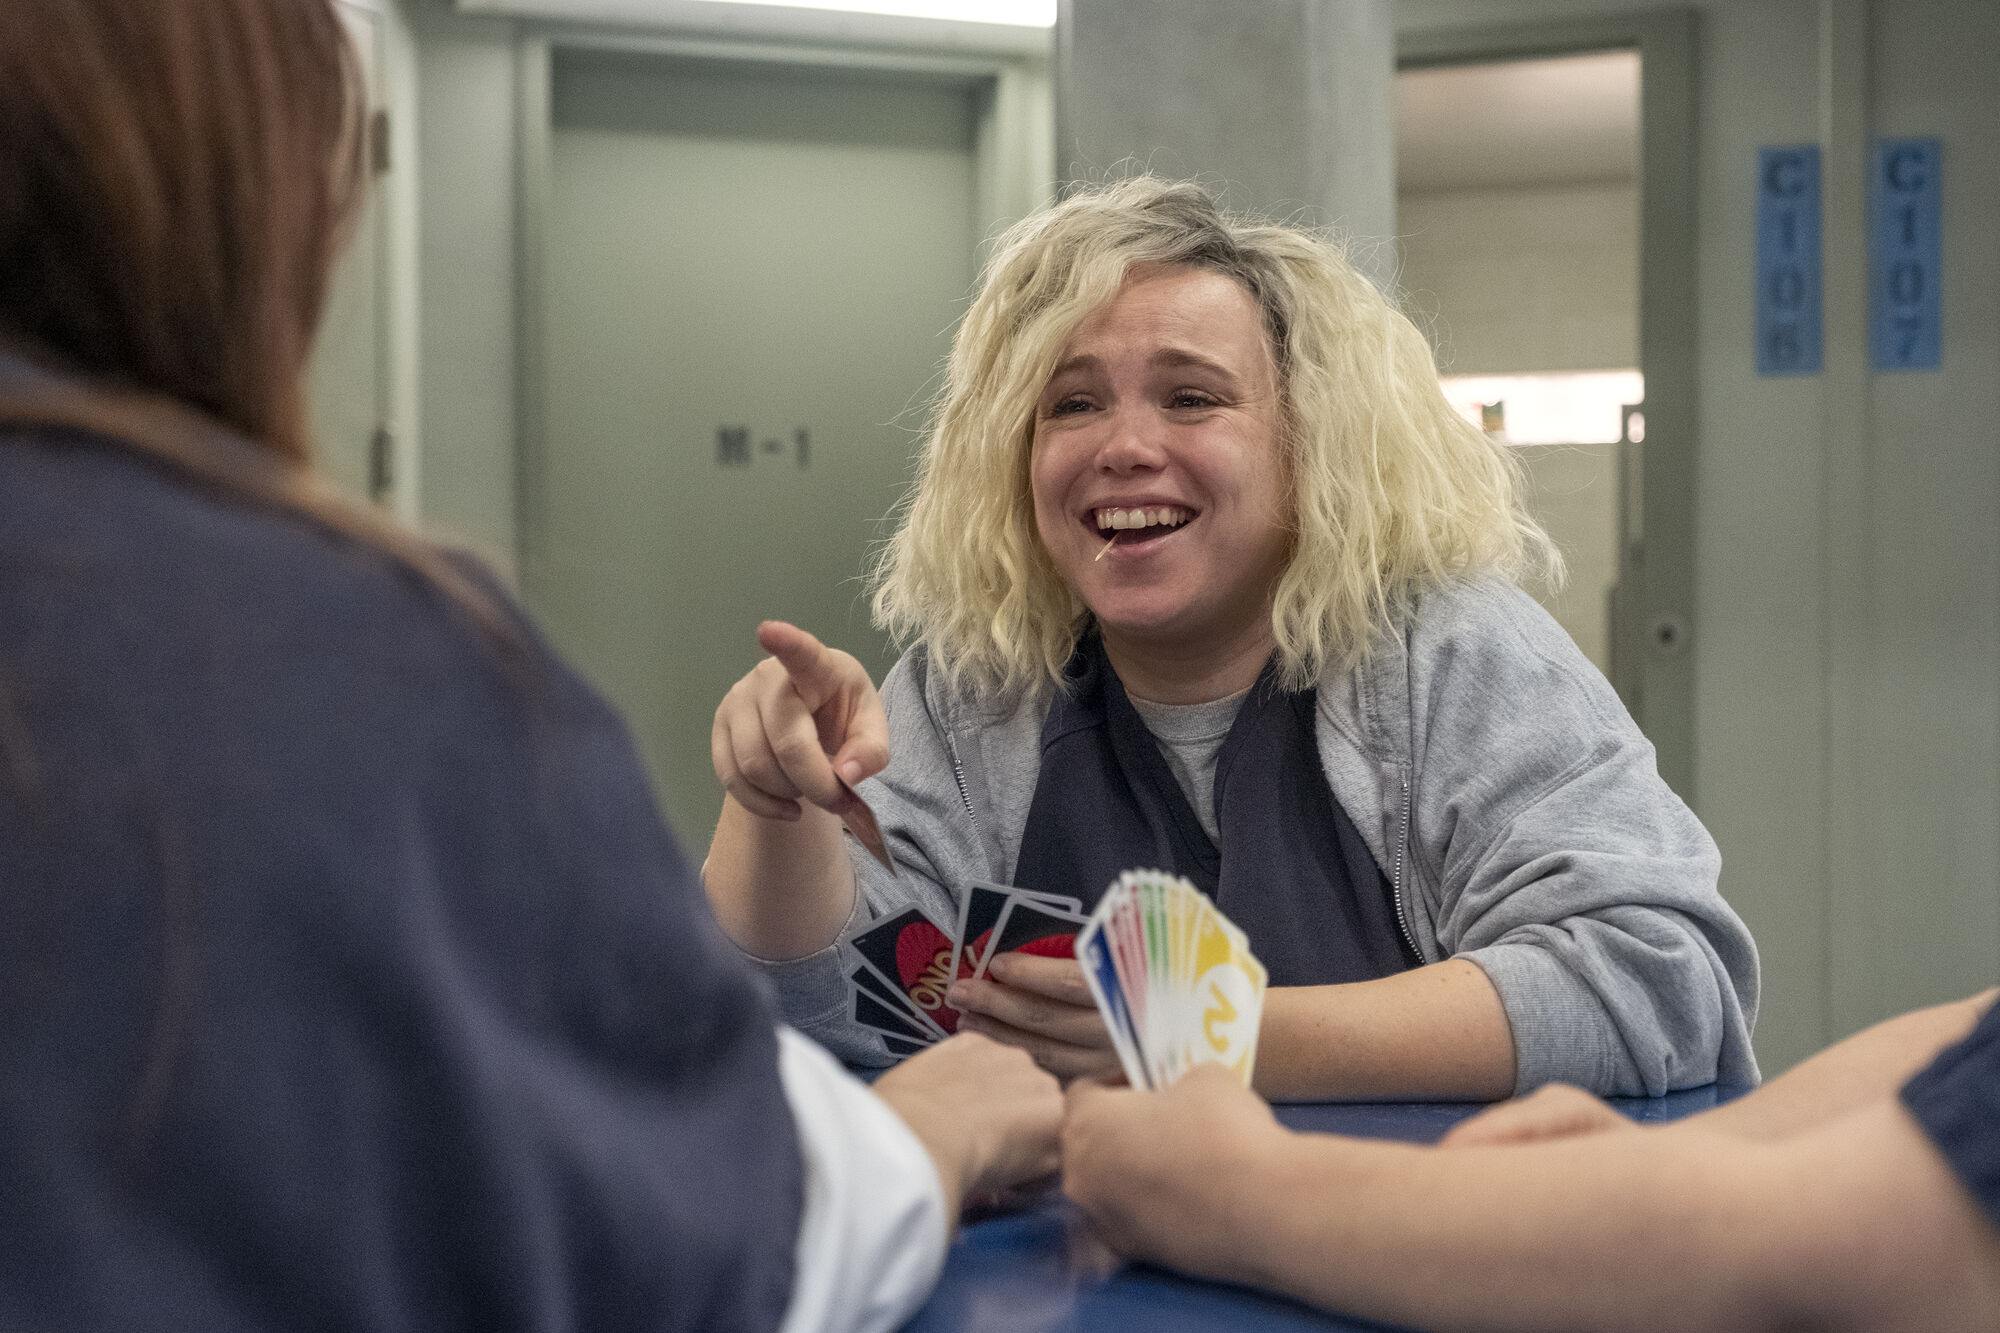 Madison Murphy | Orange Is the New Black Wiki | FANDOM powered by Wikia